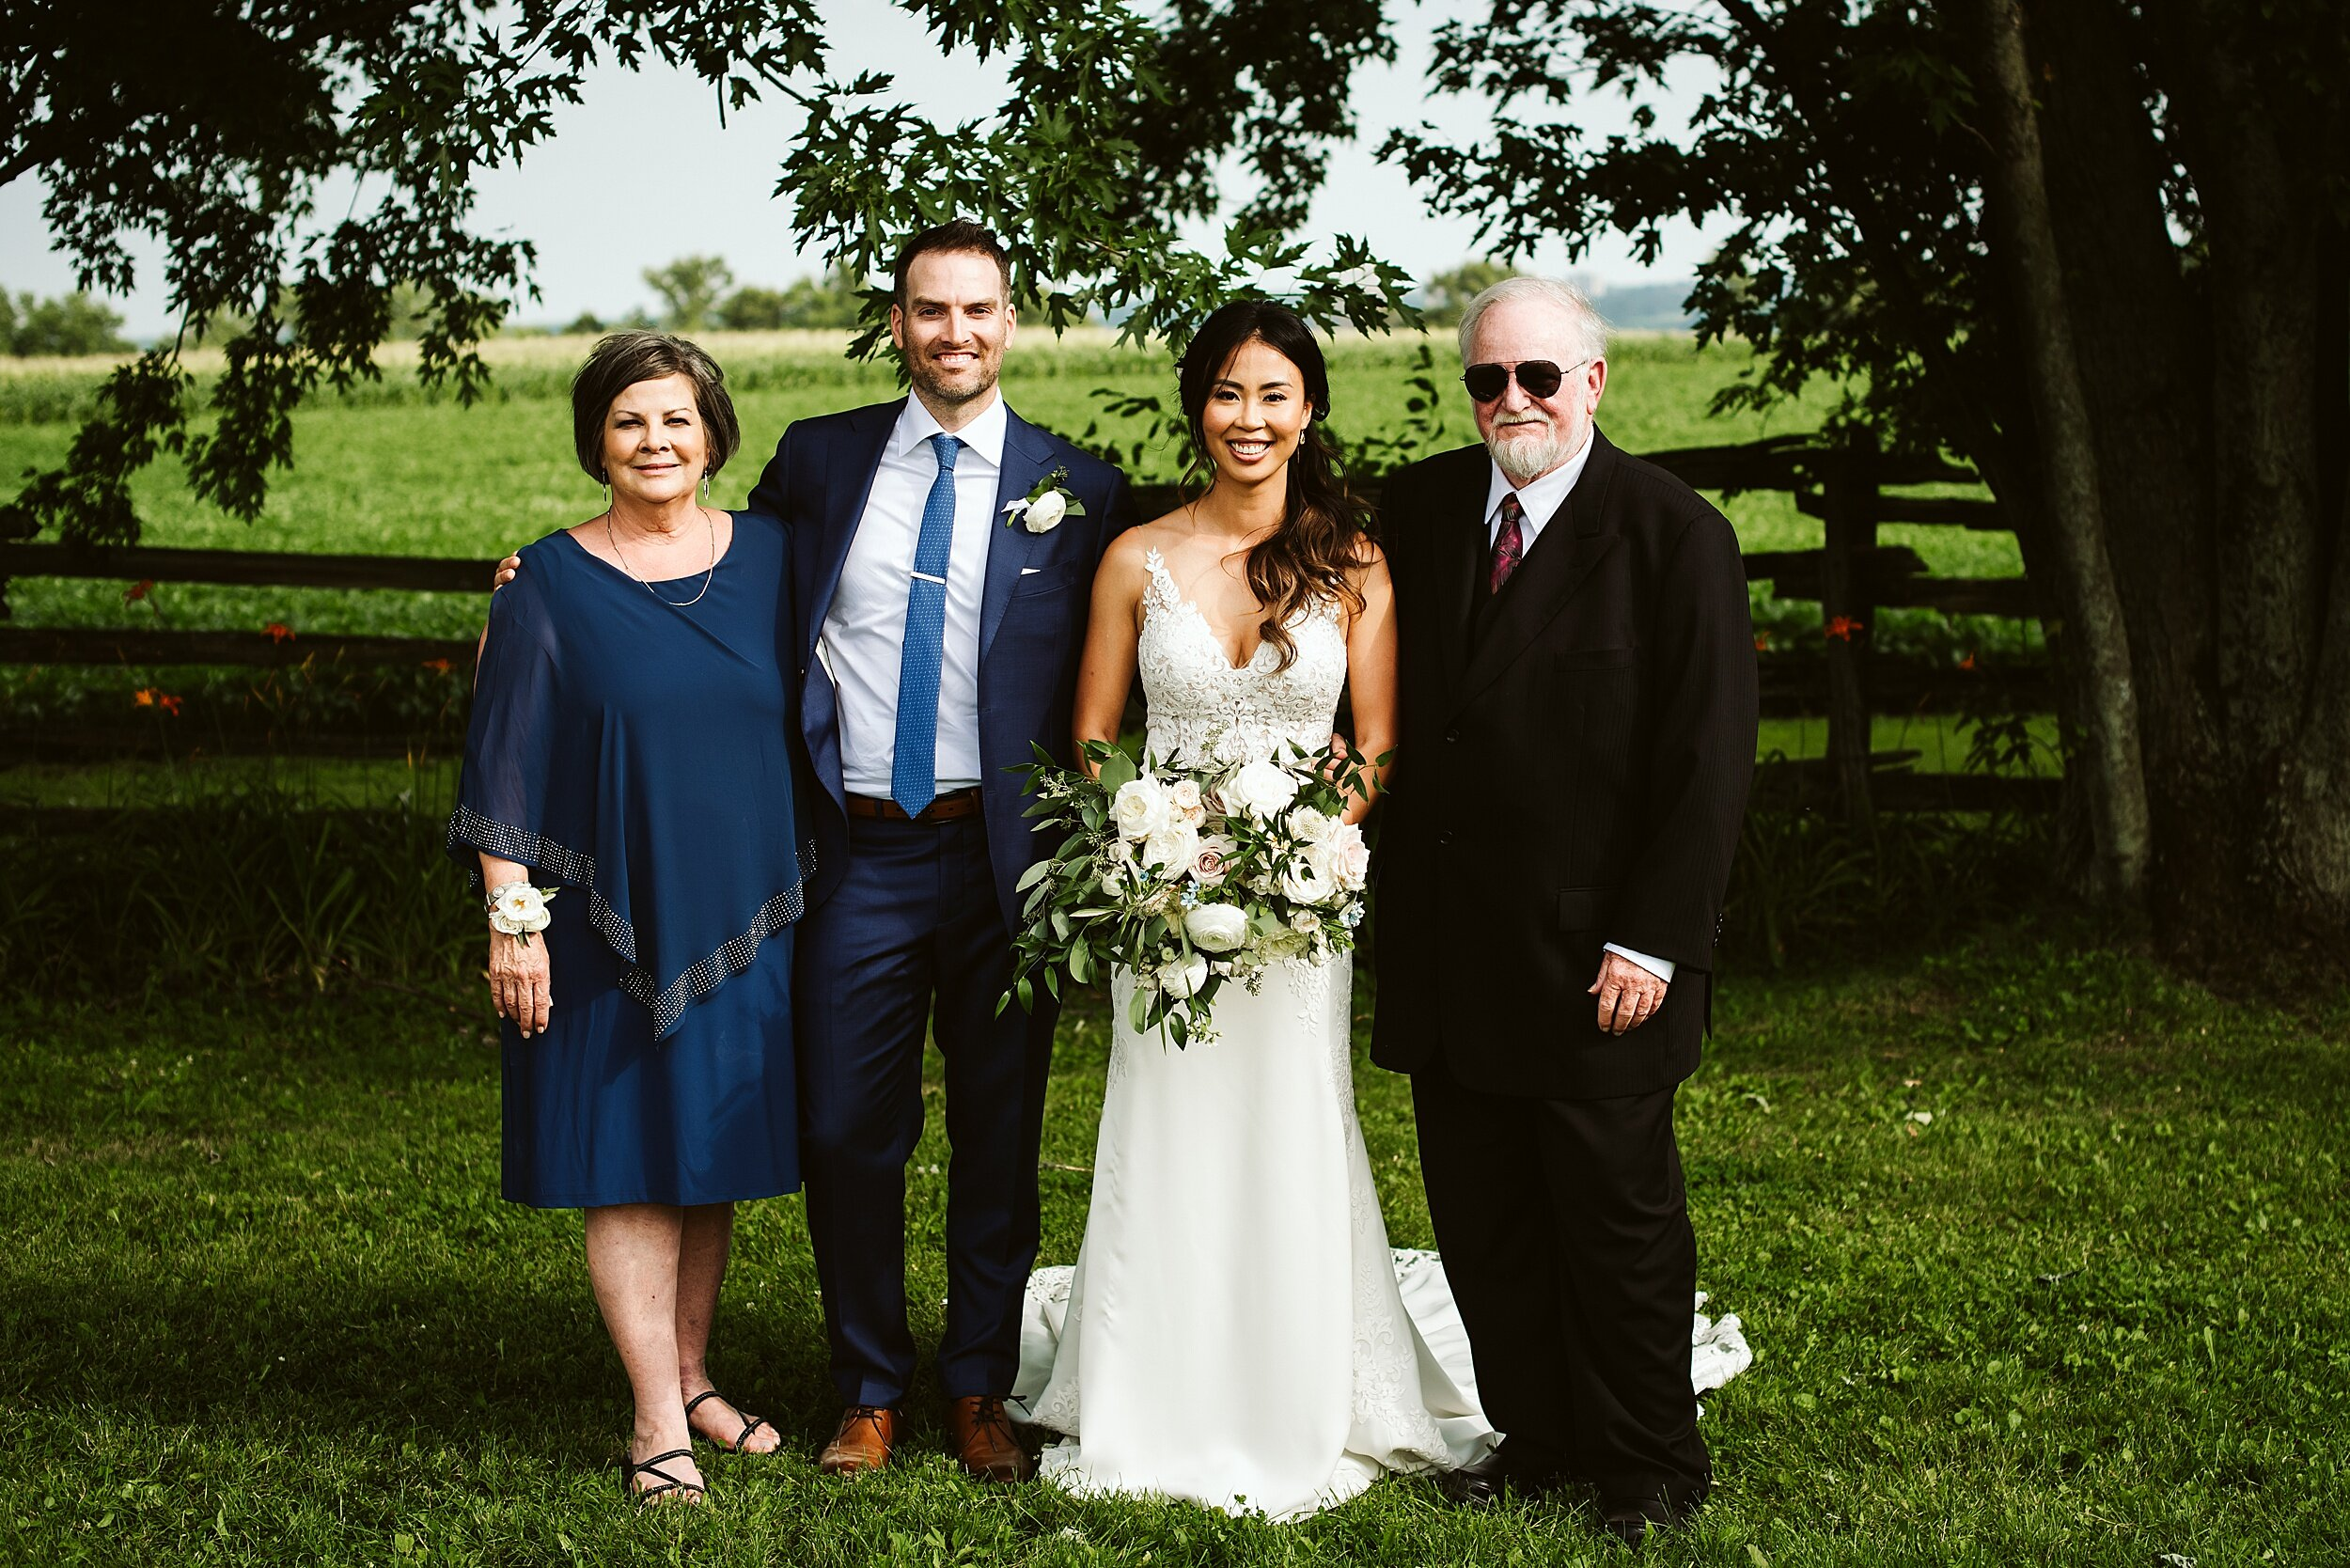 Glen_Drummon_Farm_Wedding_Toronto_Photographers_Fox_Photography_Dyments_0045.jpg